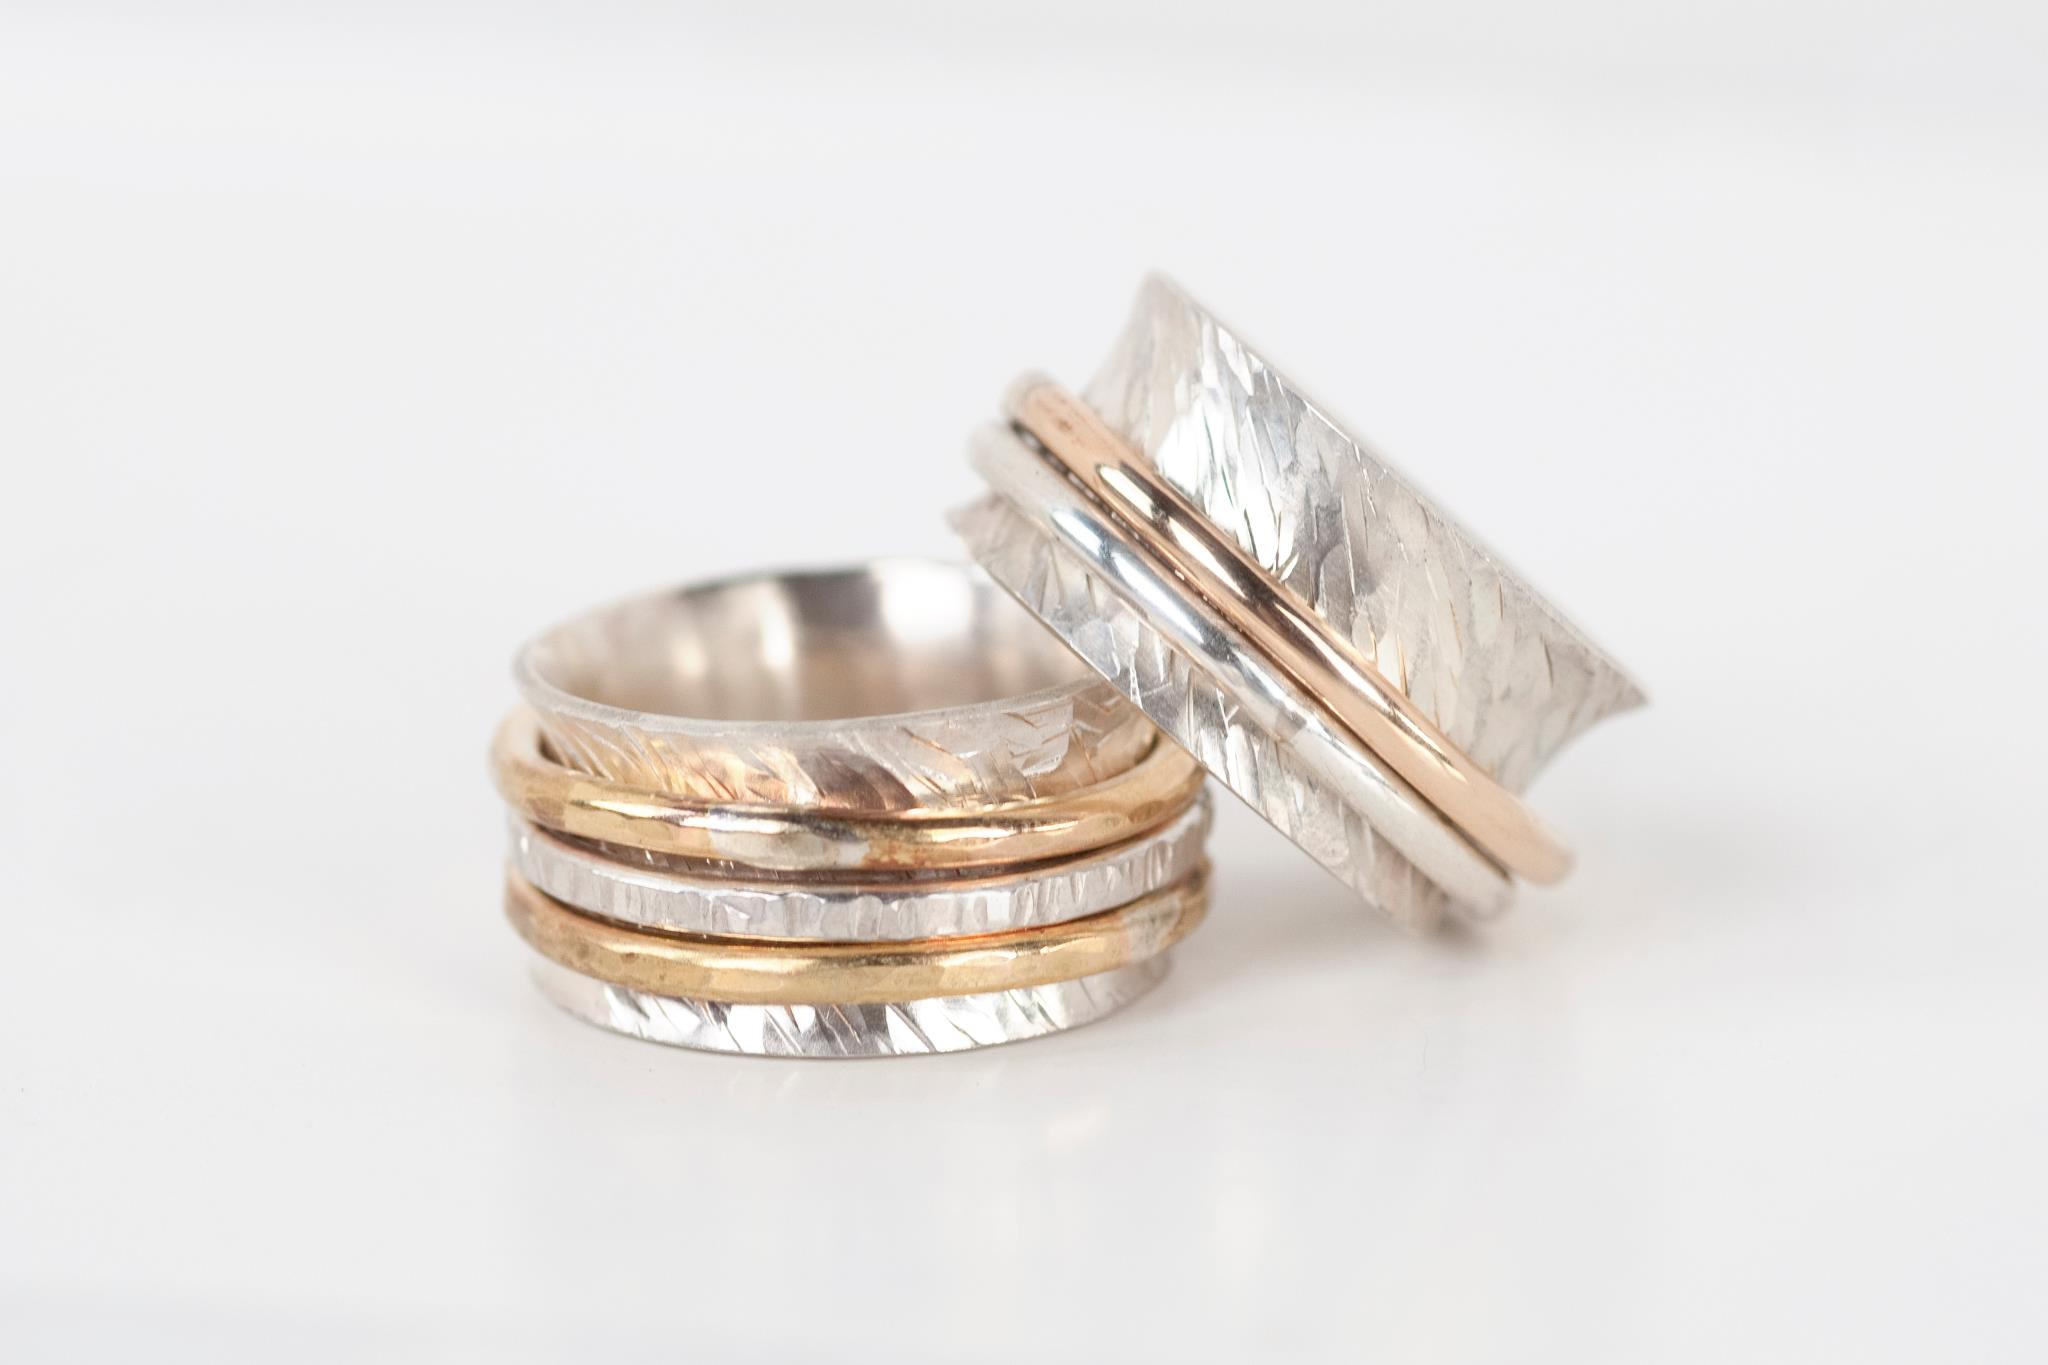 The Pam Ring